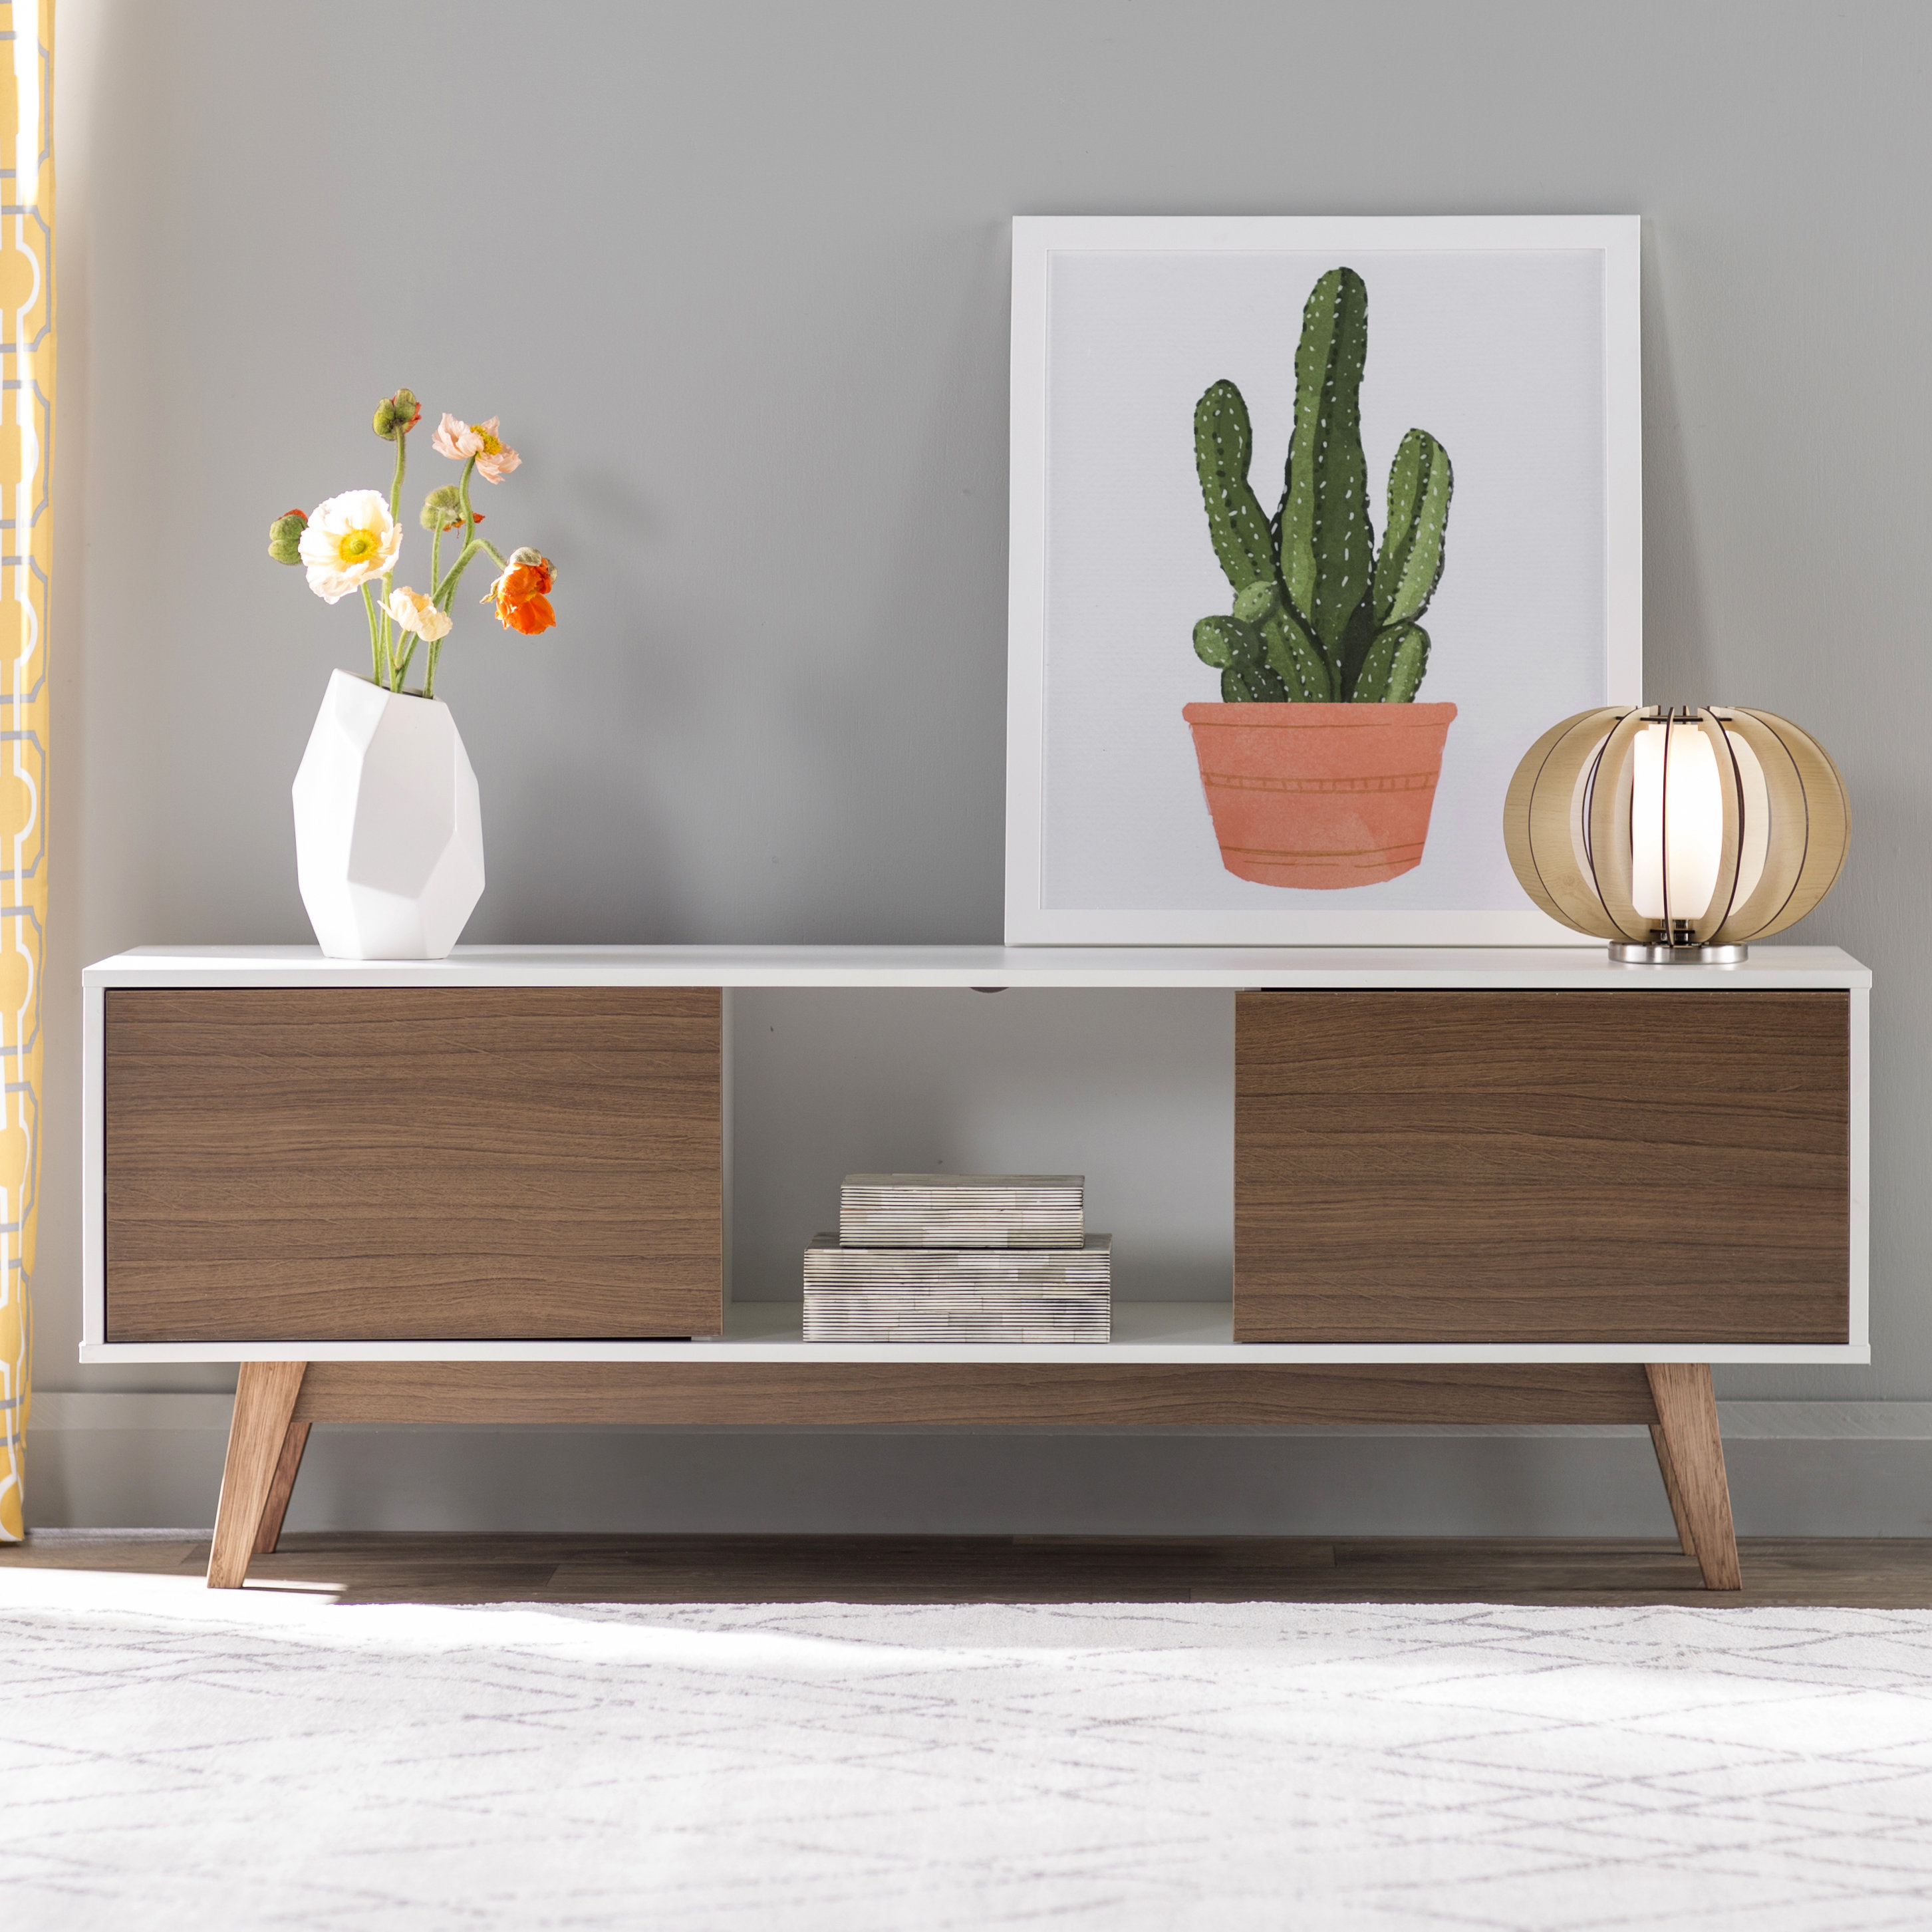 """Langley Street Makayla Tv Stand For Tvs Up To 59"""" & Reviews   Wayfair With Regard To Laurent 50 Inch Tv Stands (View 10 of 30)"""